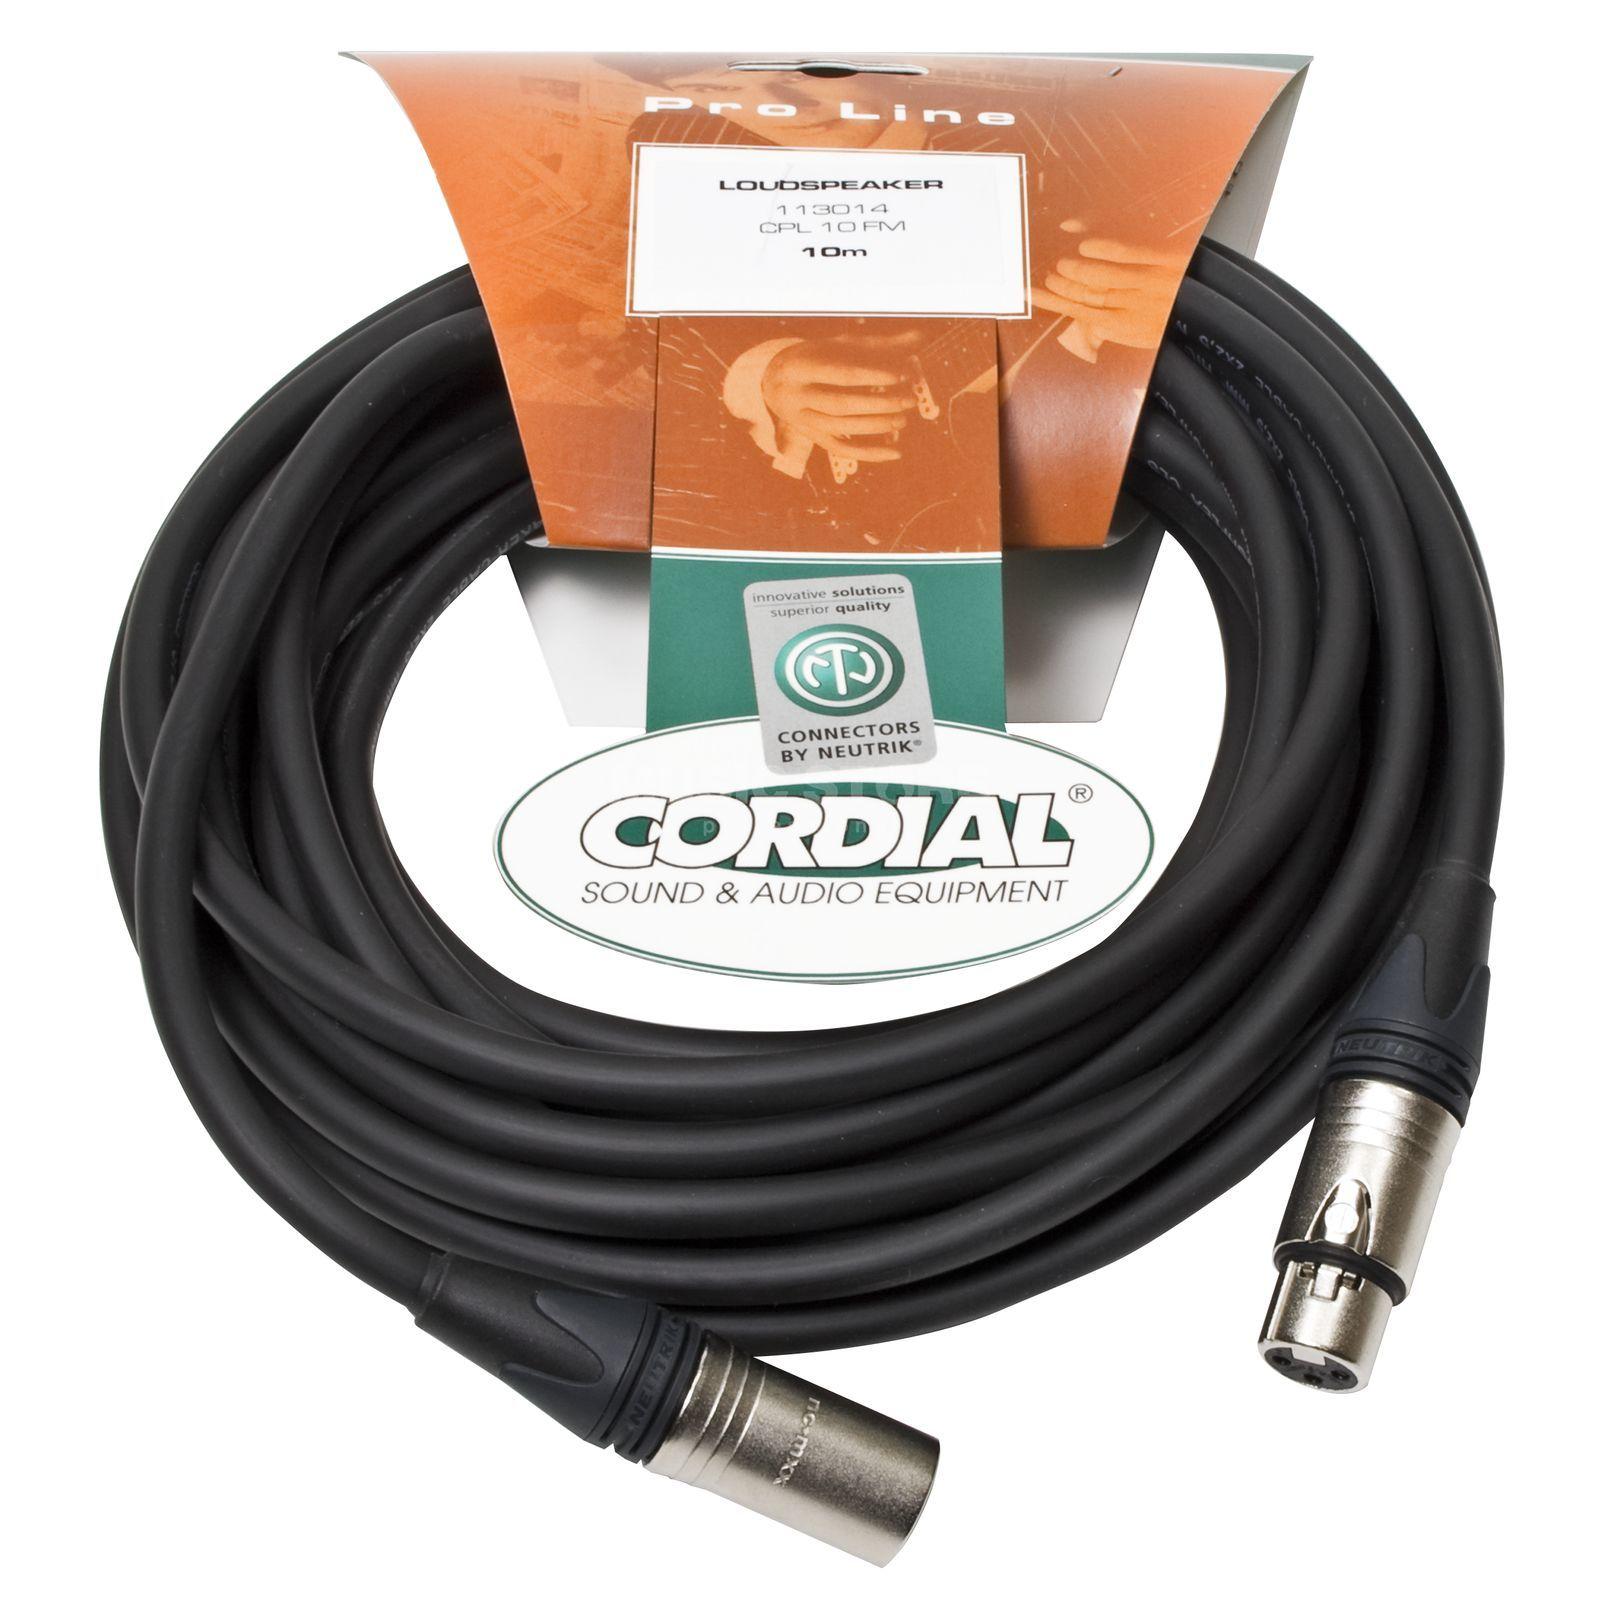 Cordial CPL 10 FM peak Speaker Cable XLR 10m 2x2,5 mm² Neutrik Produktbillede